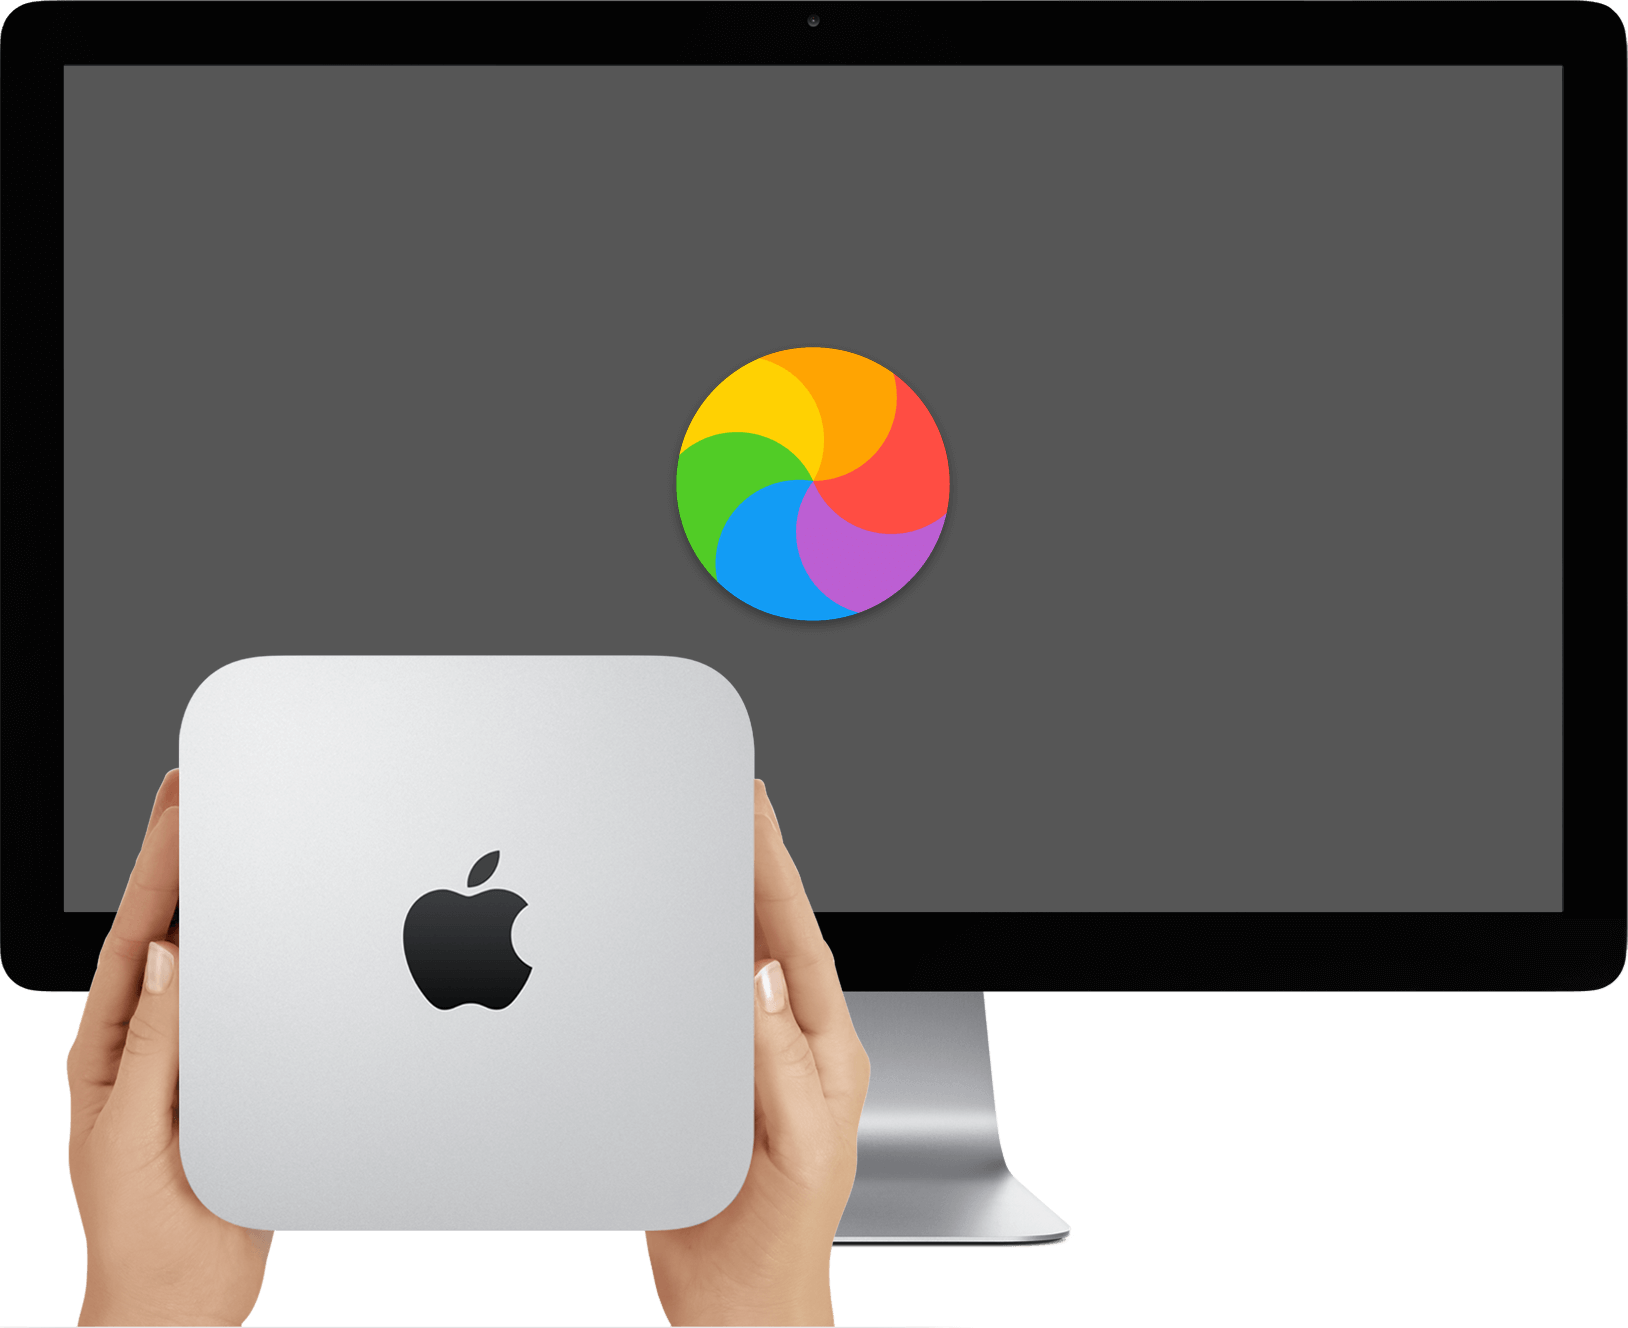 A Mac Mini and Apple Display. It's slow, so there is a spinning beach ball on the screen as the user waits